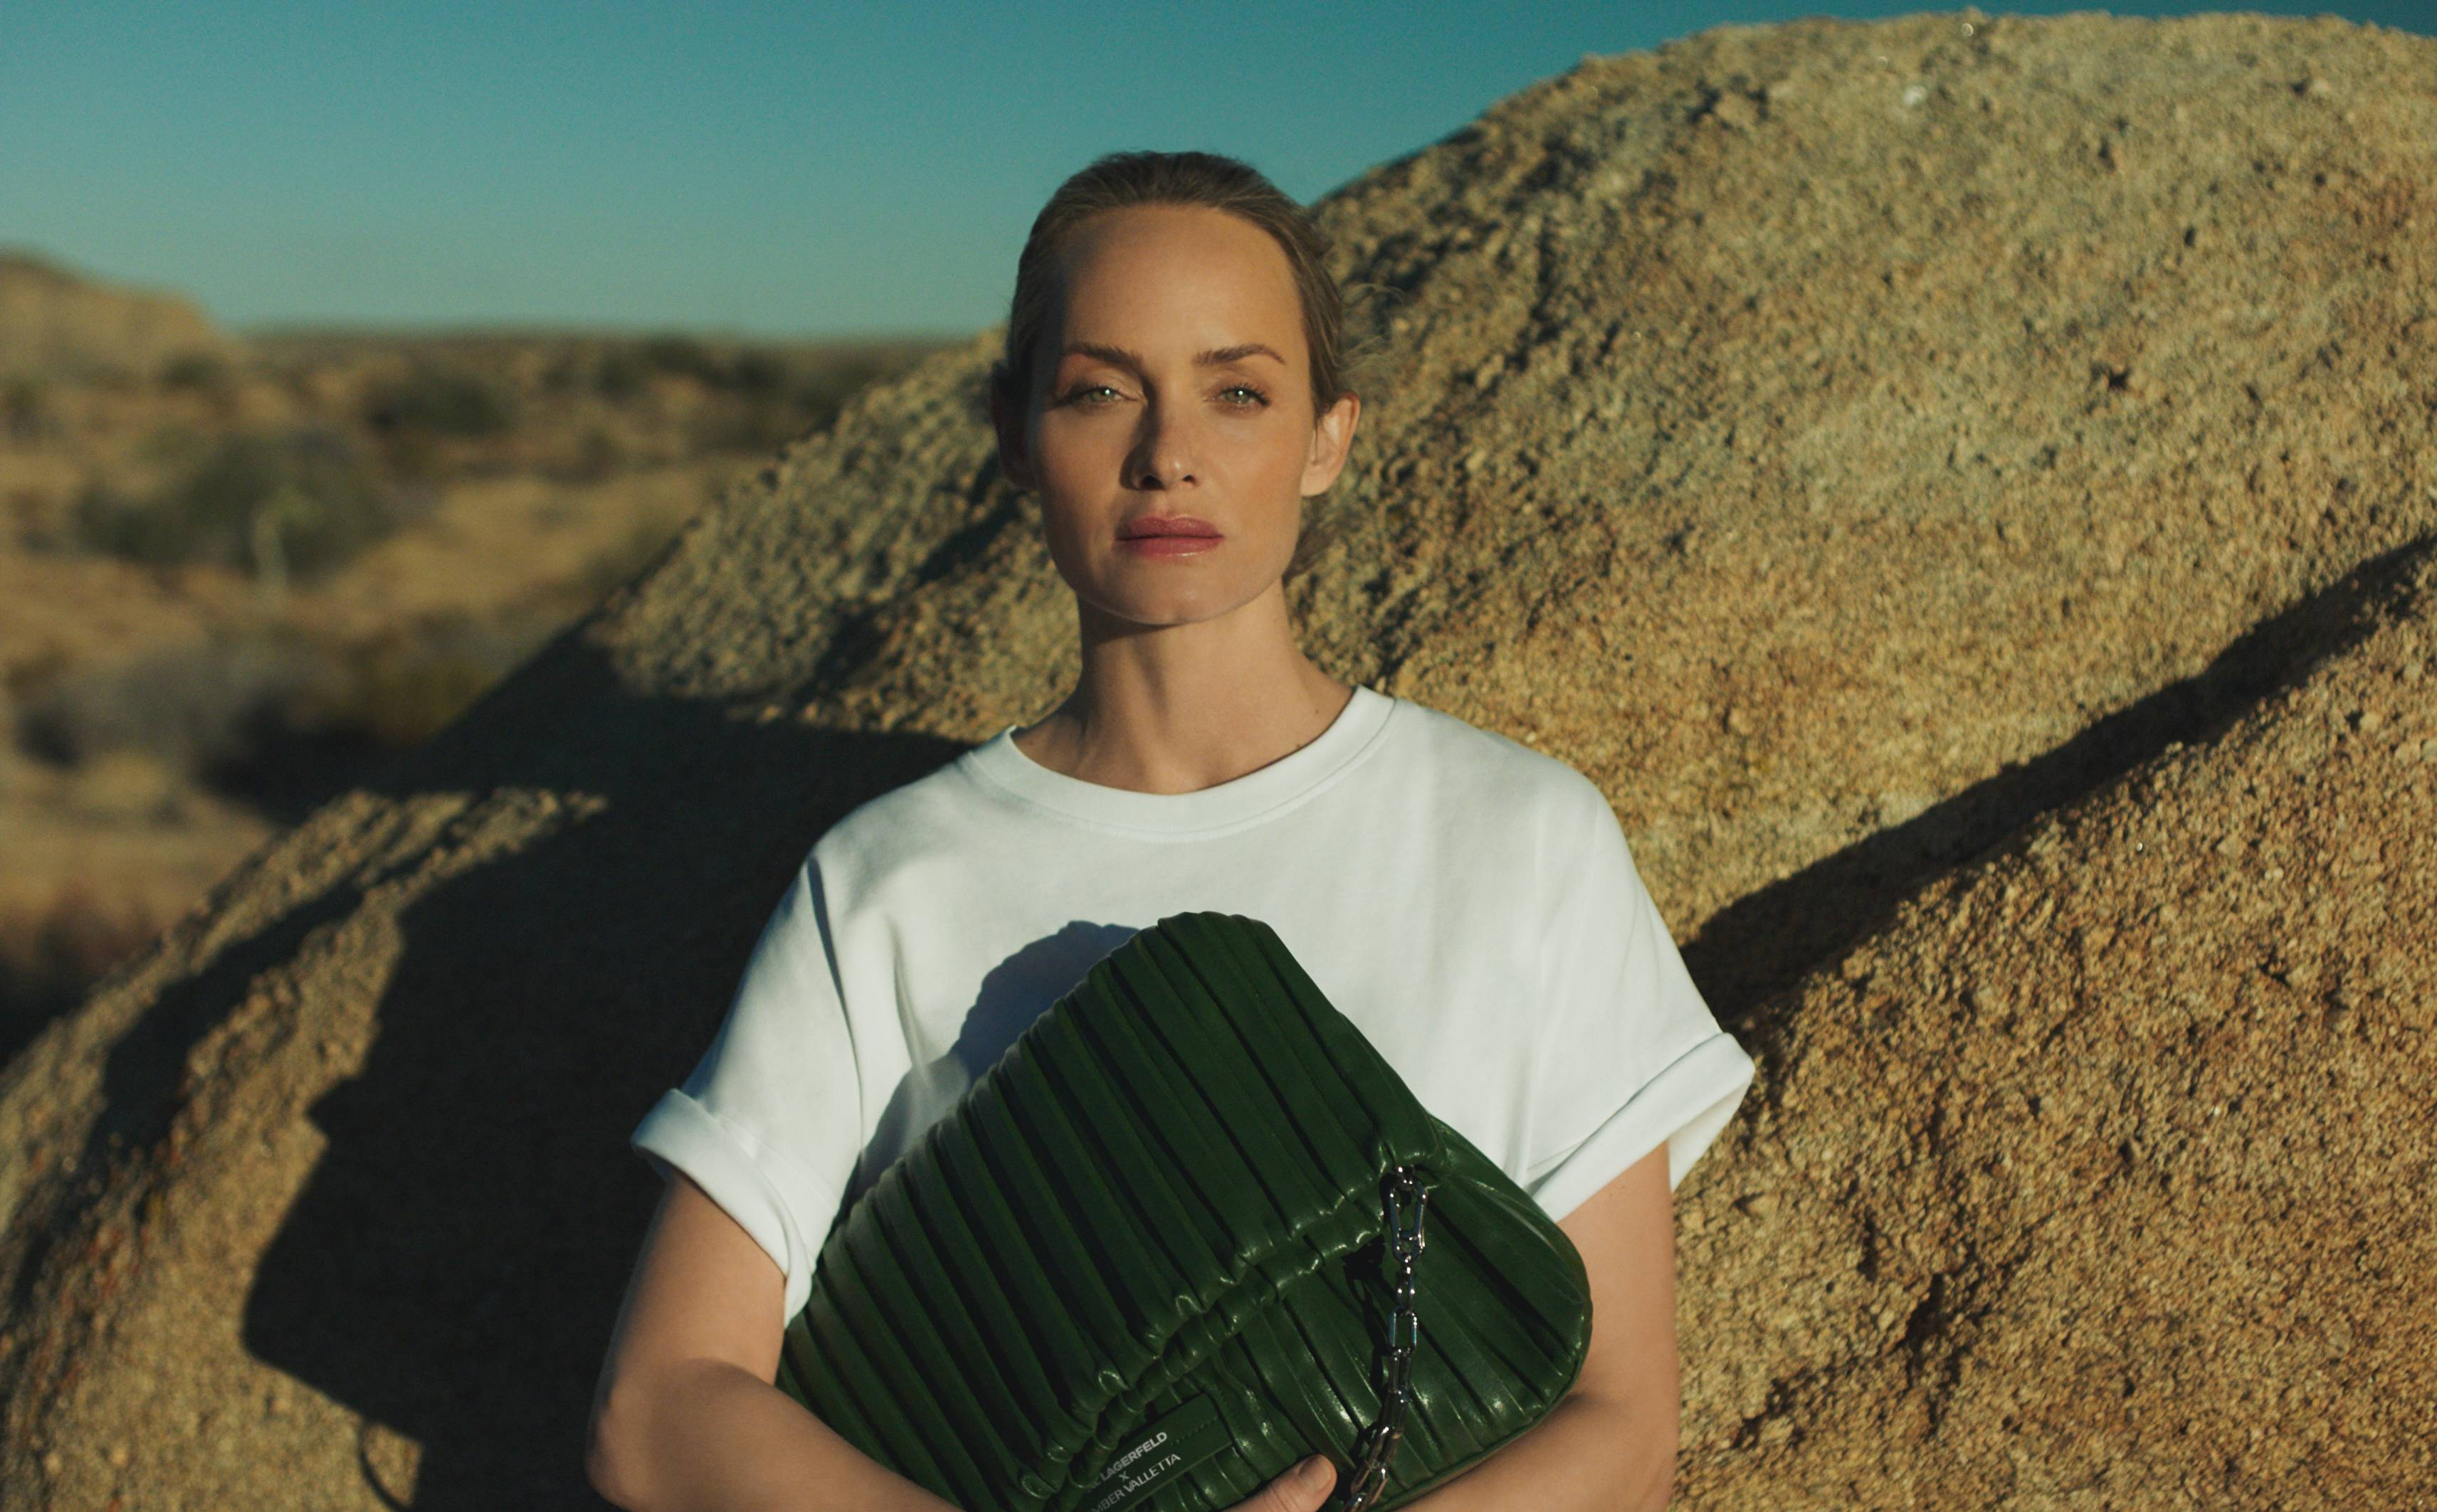 Karl Lagerfeld unveils debut collection with Amber Valletta